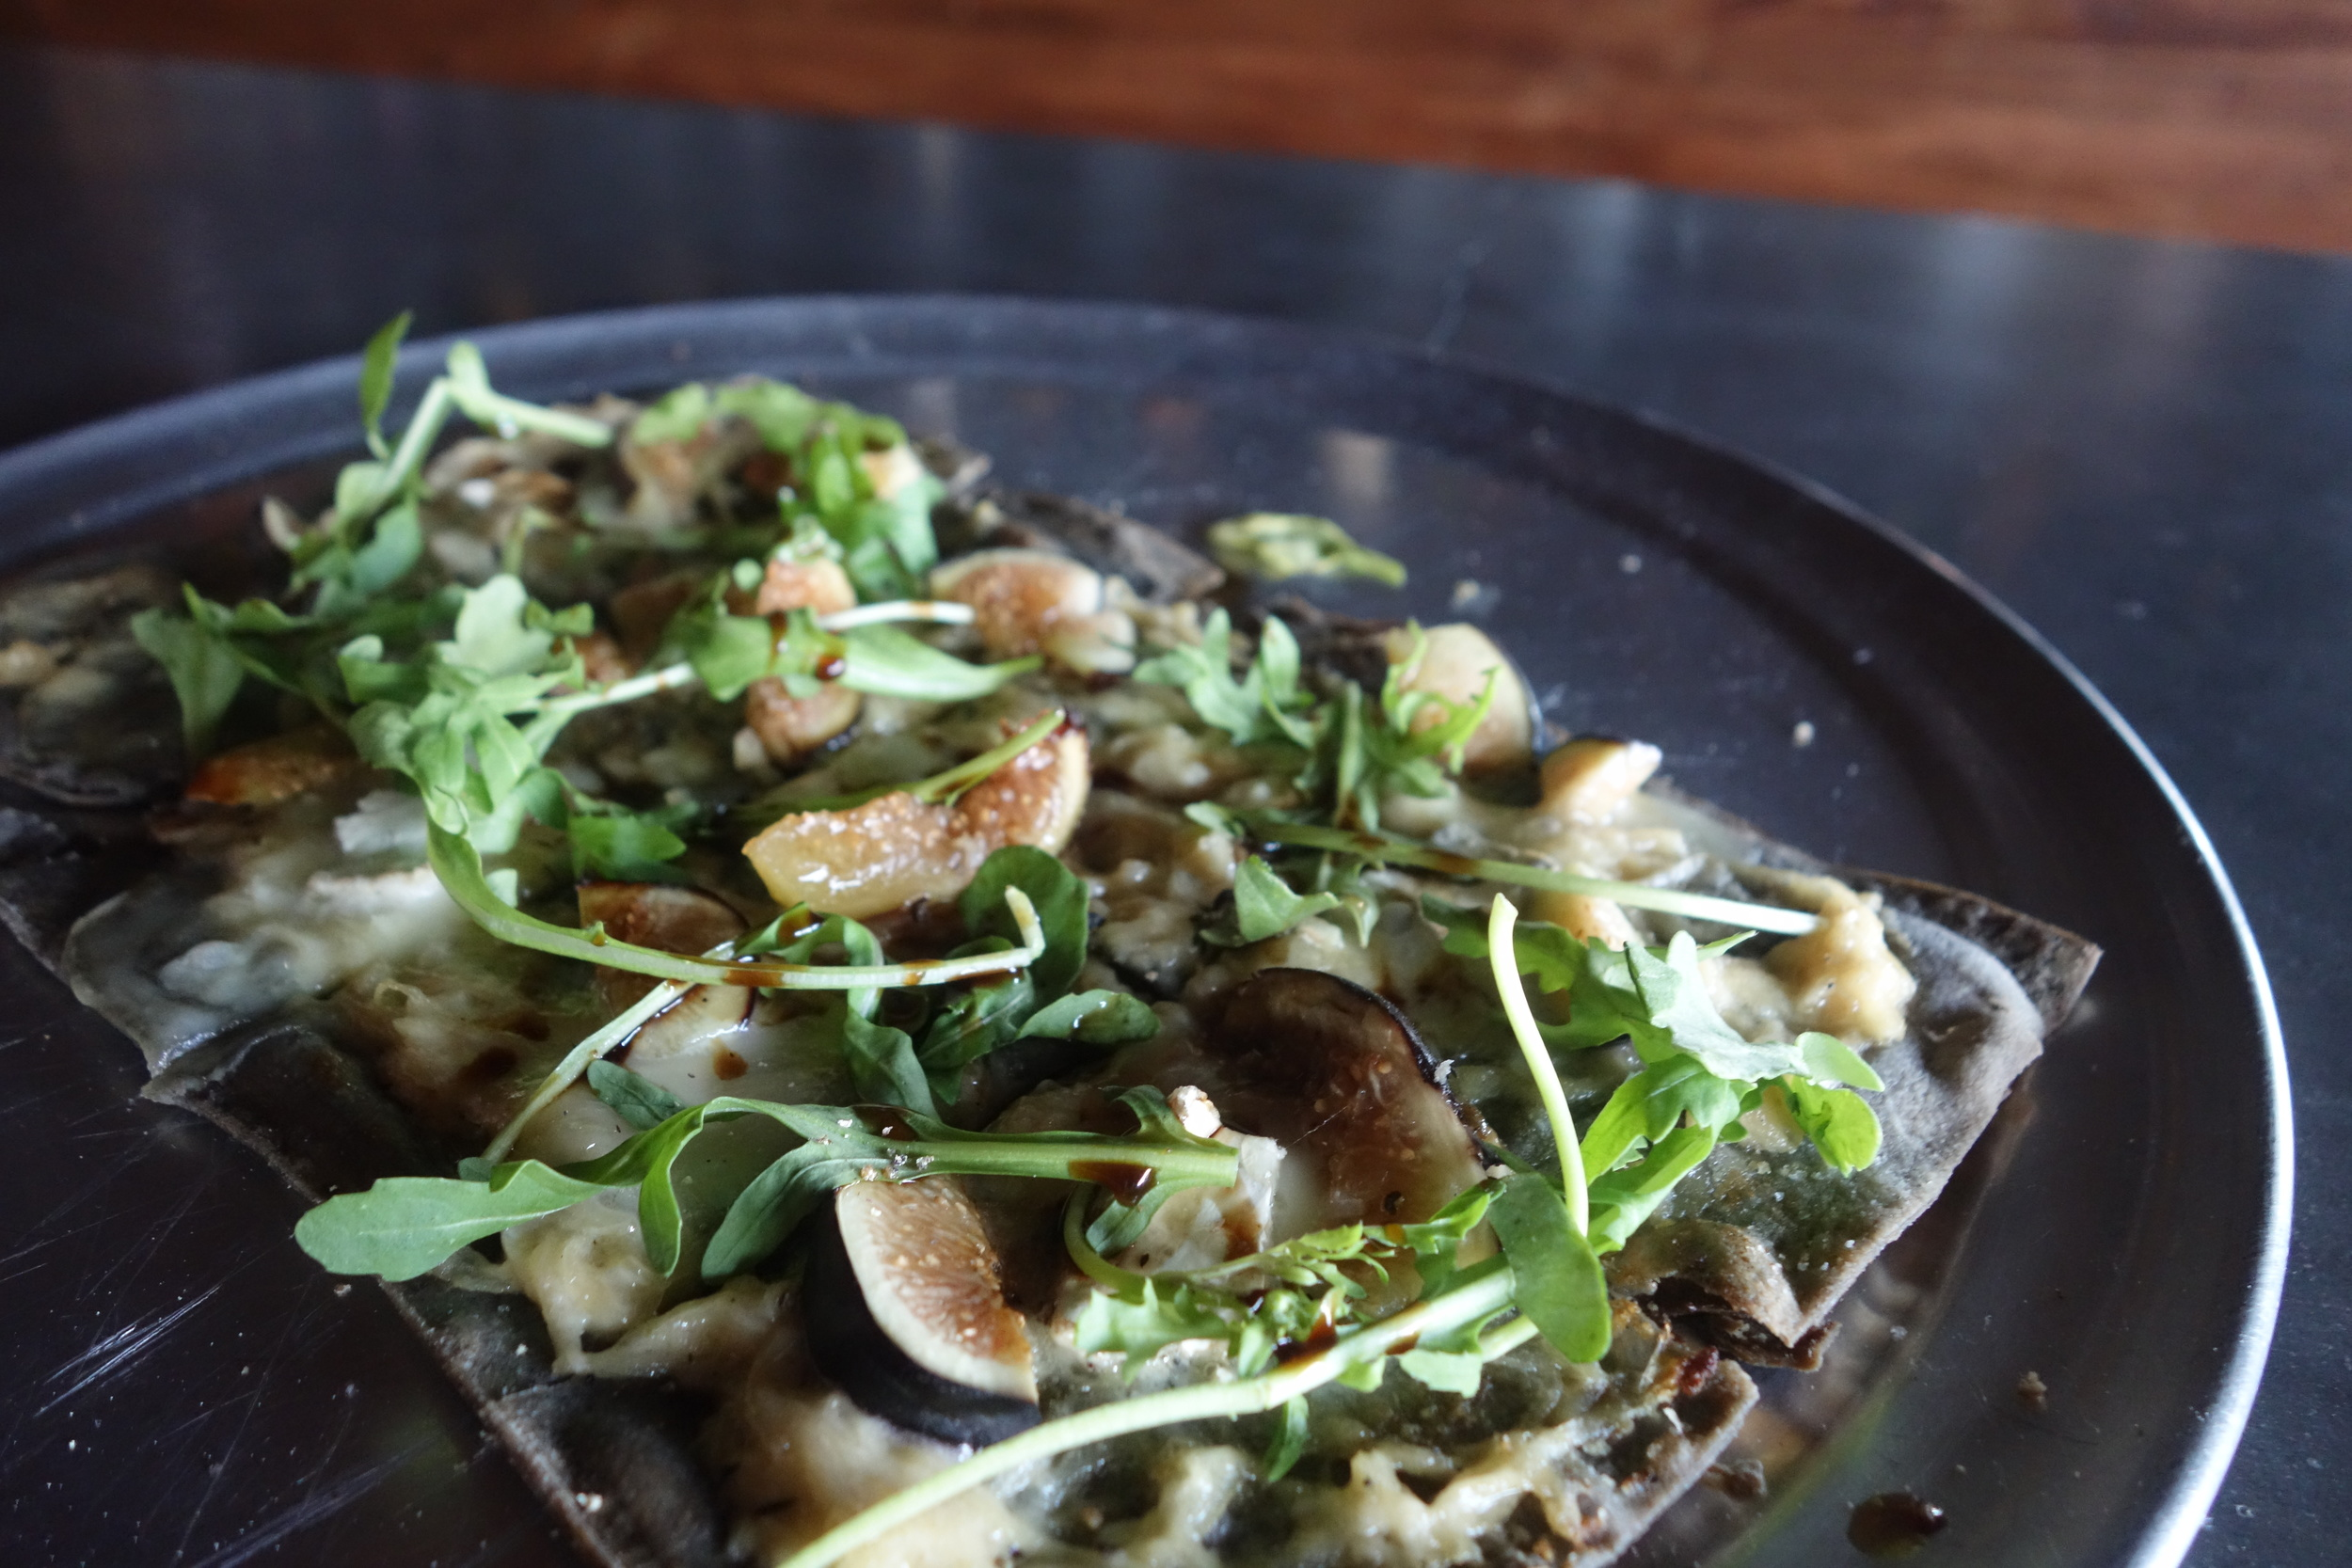 Even if you go for the pies (duh!), go for the tartes too. This one has caramelized onion and Brie on a flaky, light-as-air bread infused with squid ink, and topped with fresh figs, arugula and balsamic vinegar. (Photo by Nicole Reed)